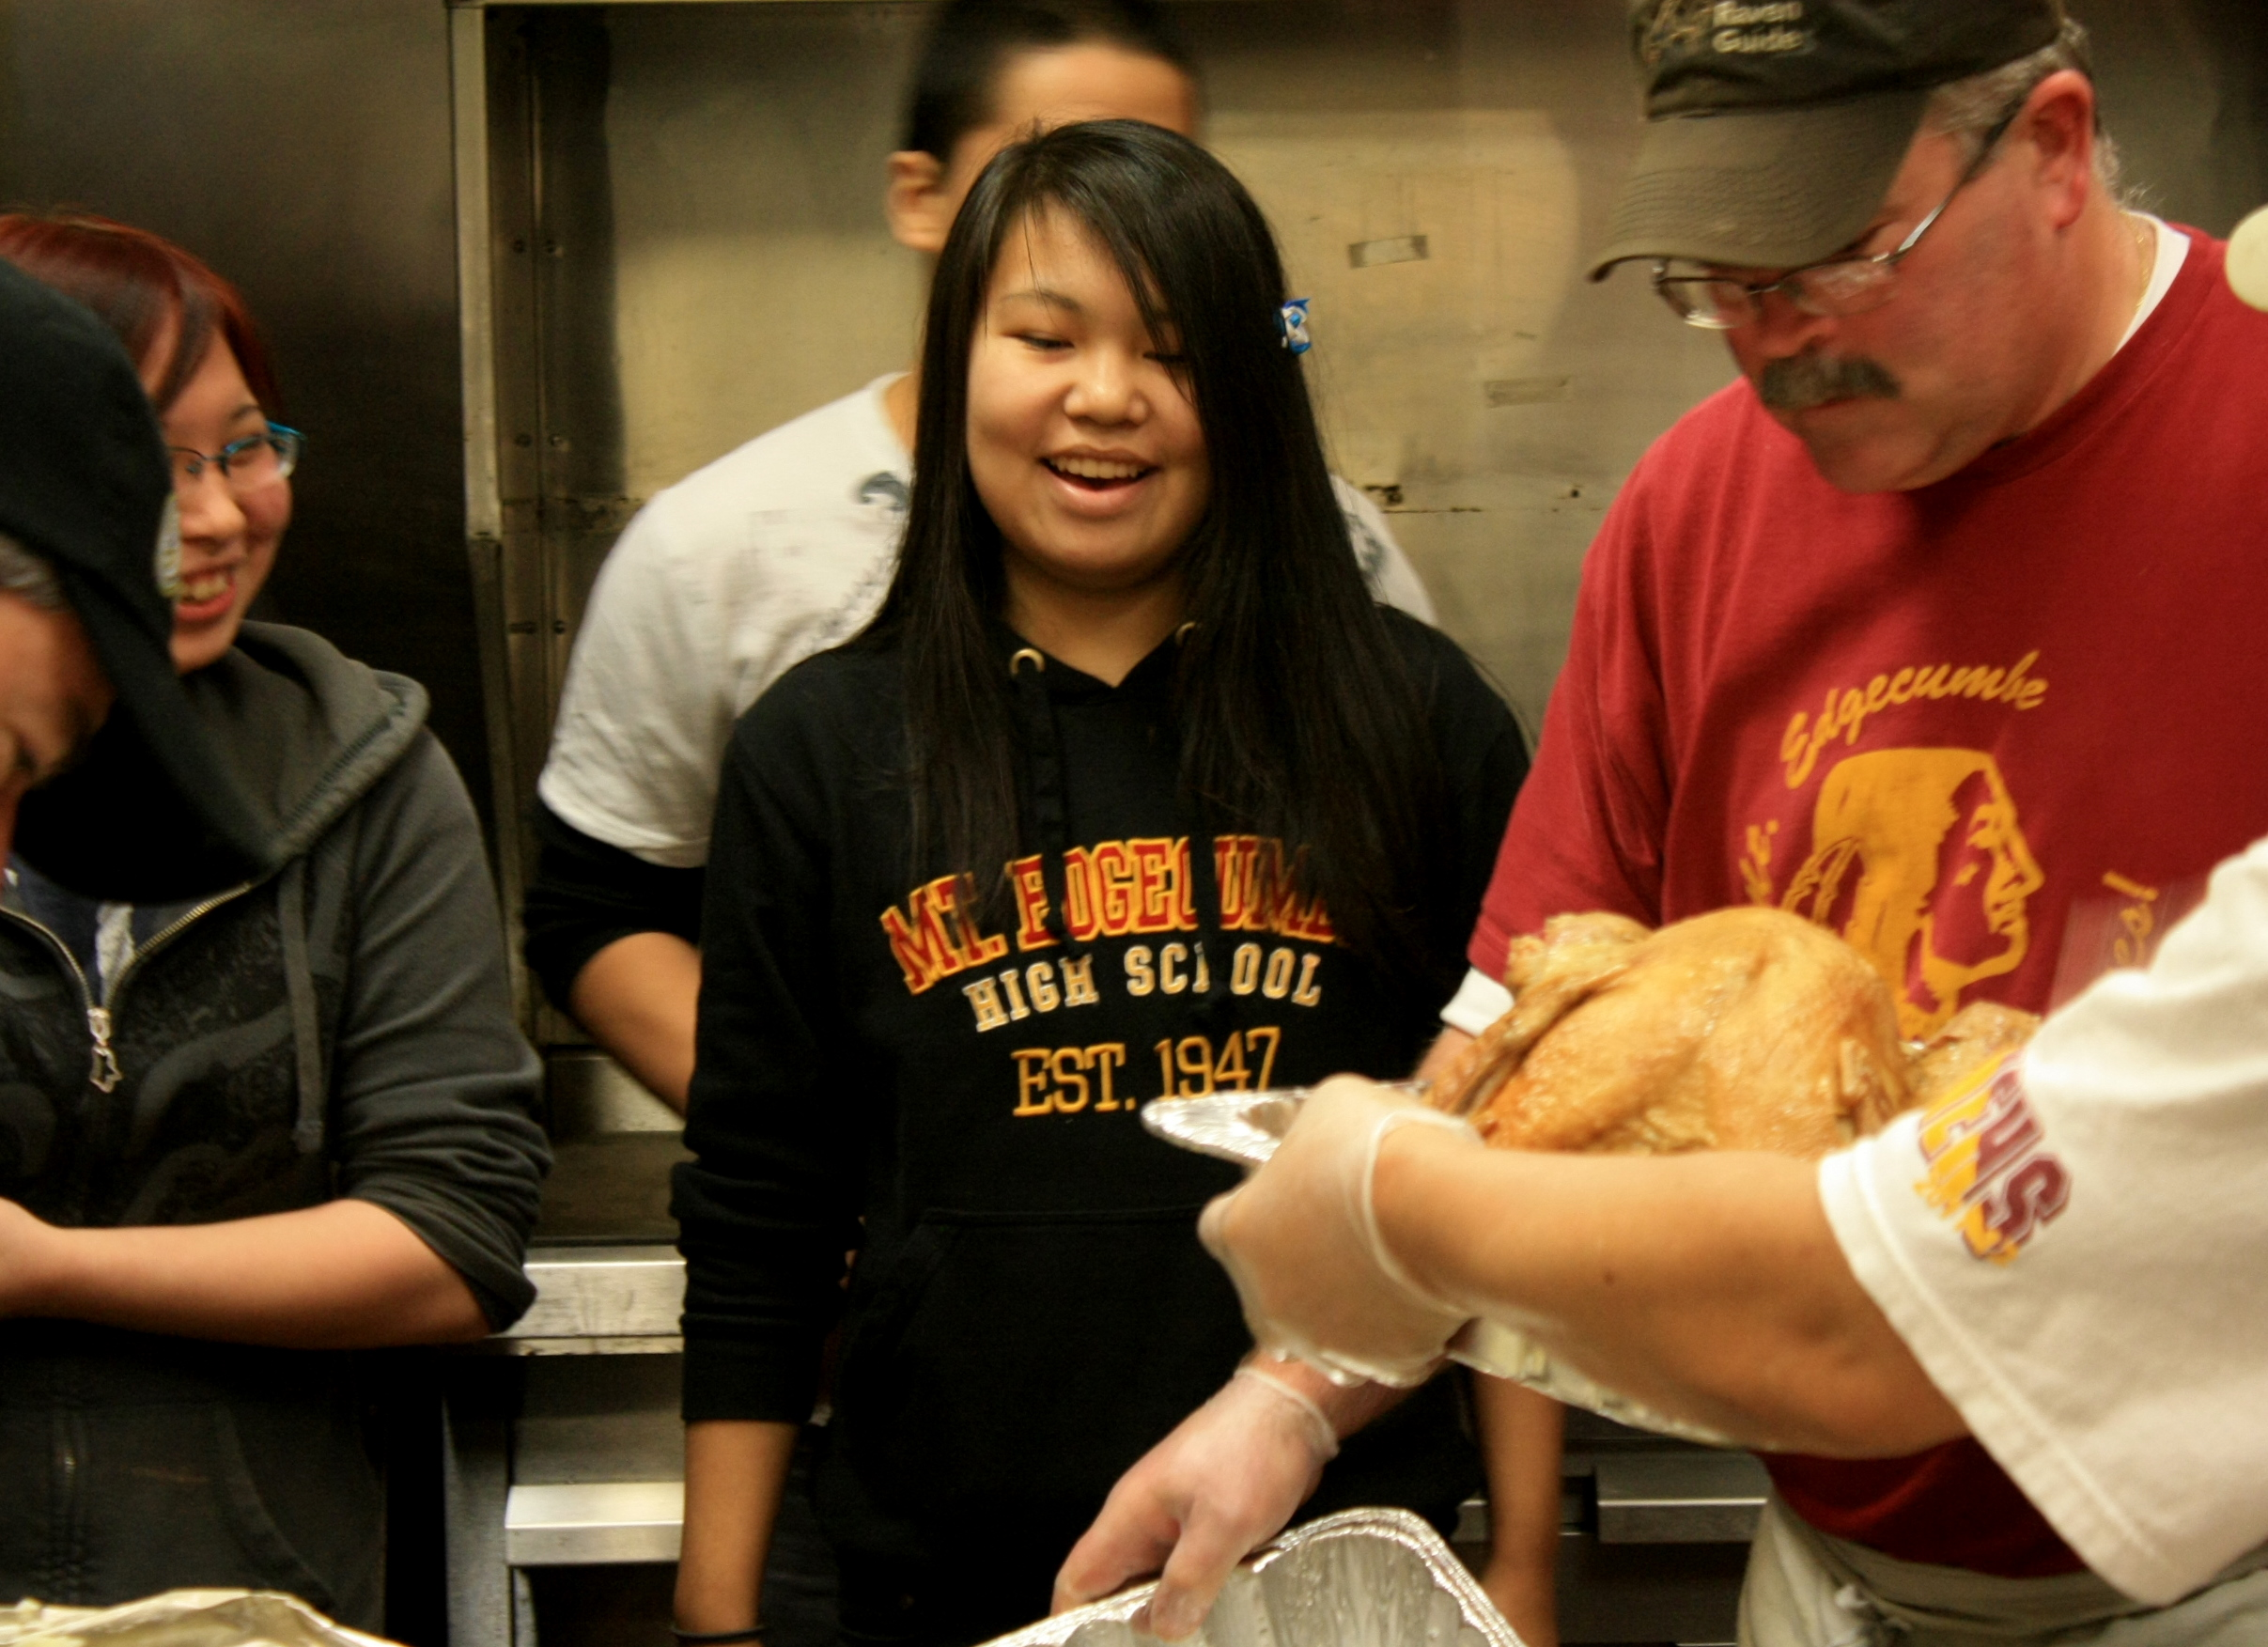 Thanksgiving comes early for Edgecumbe students